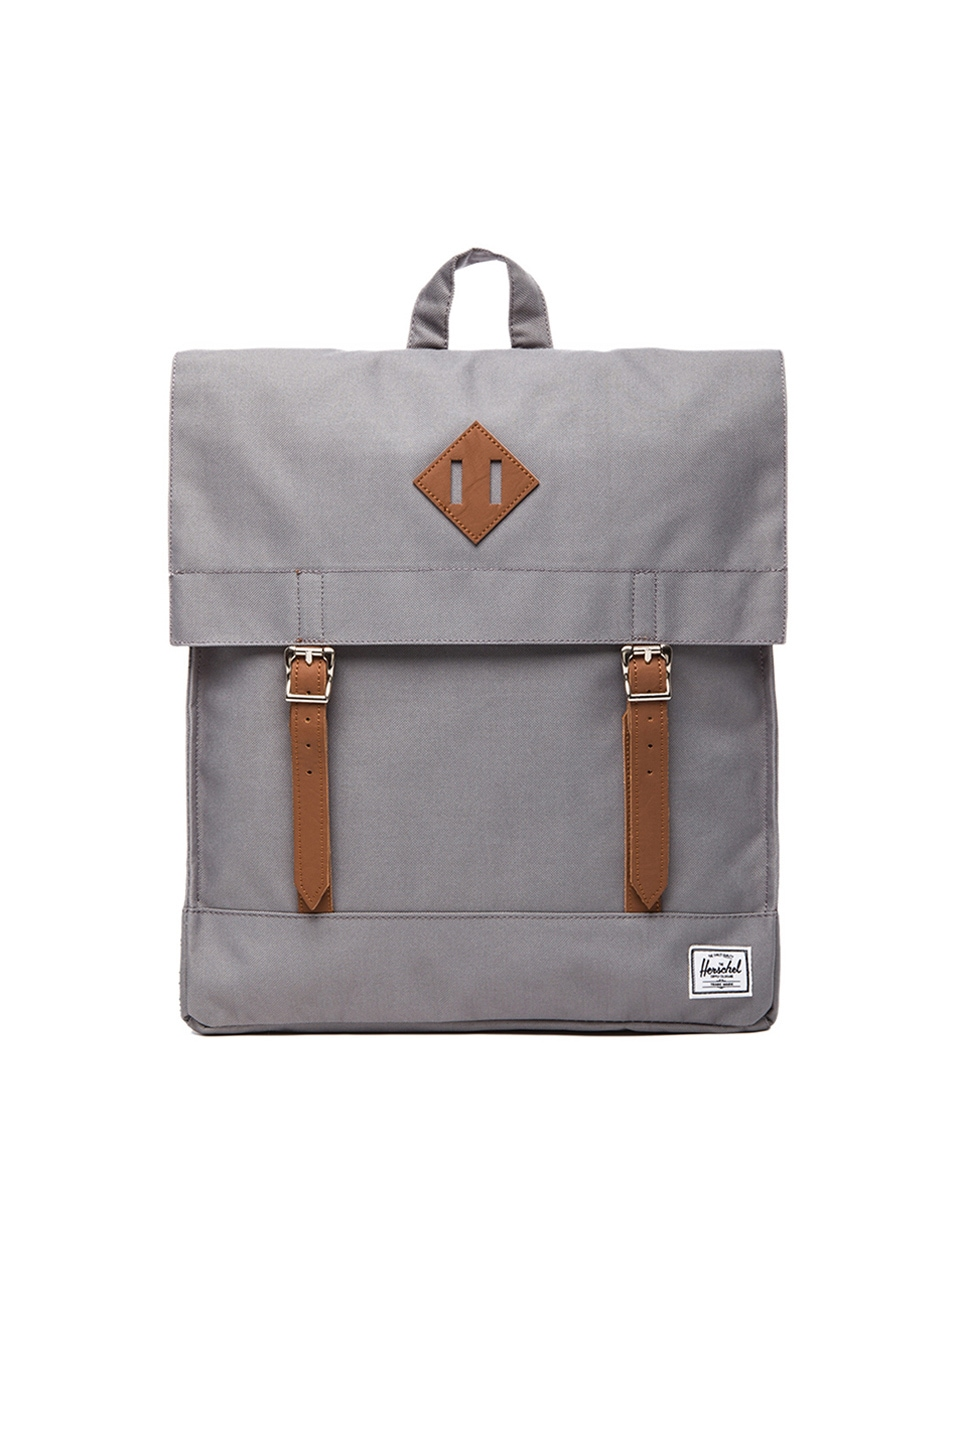 Herschel Supply Co. Survey Backpack in Grey